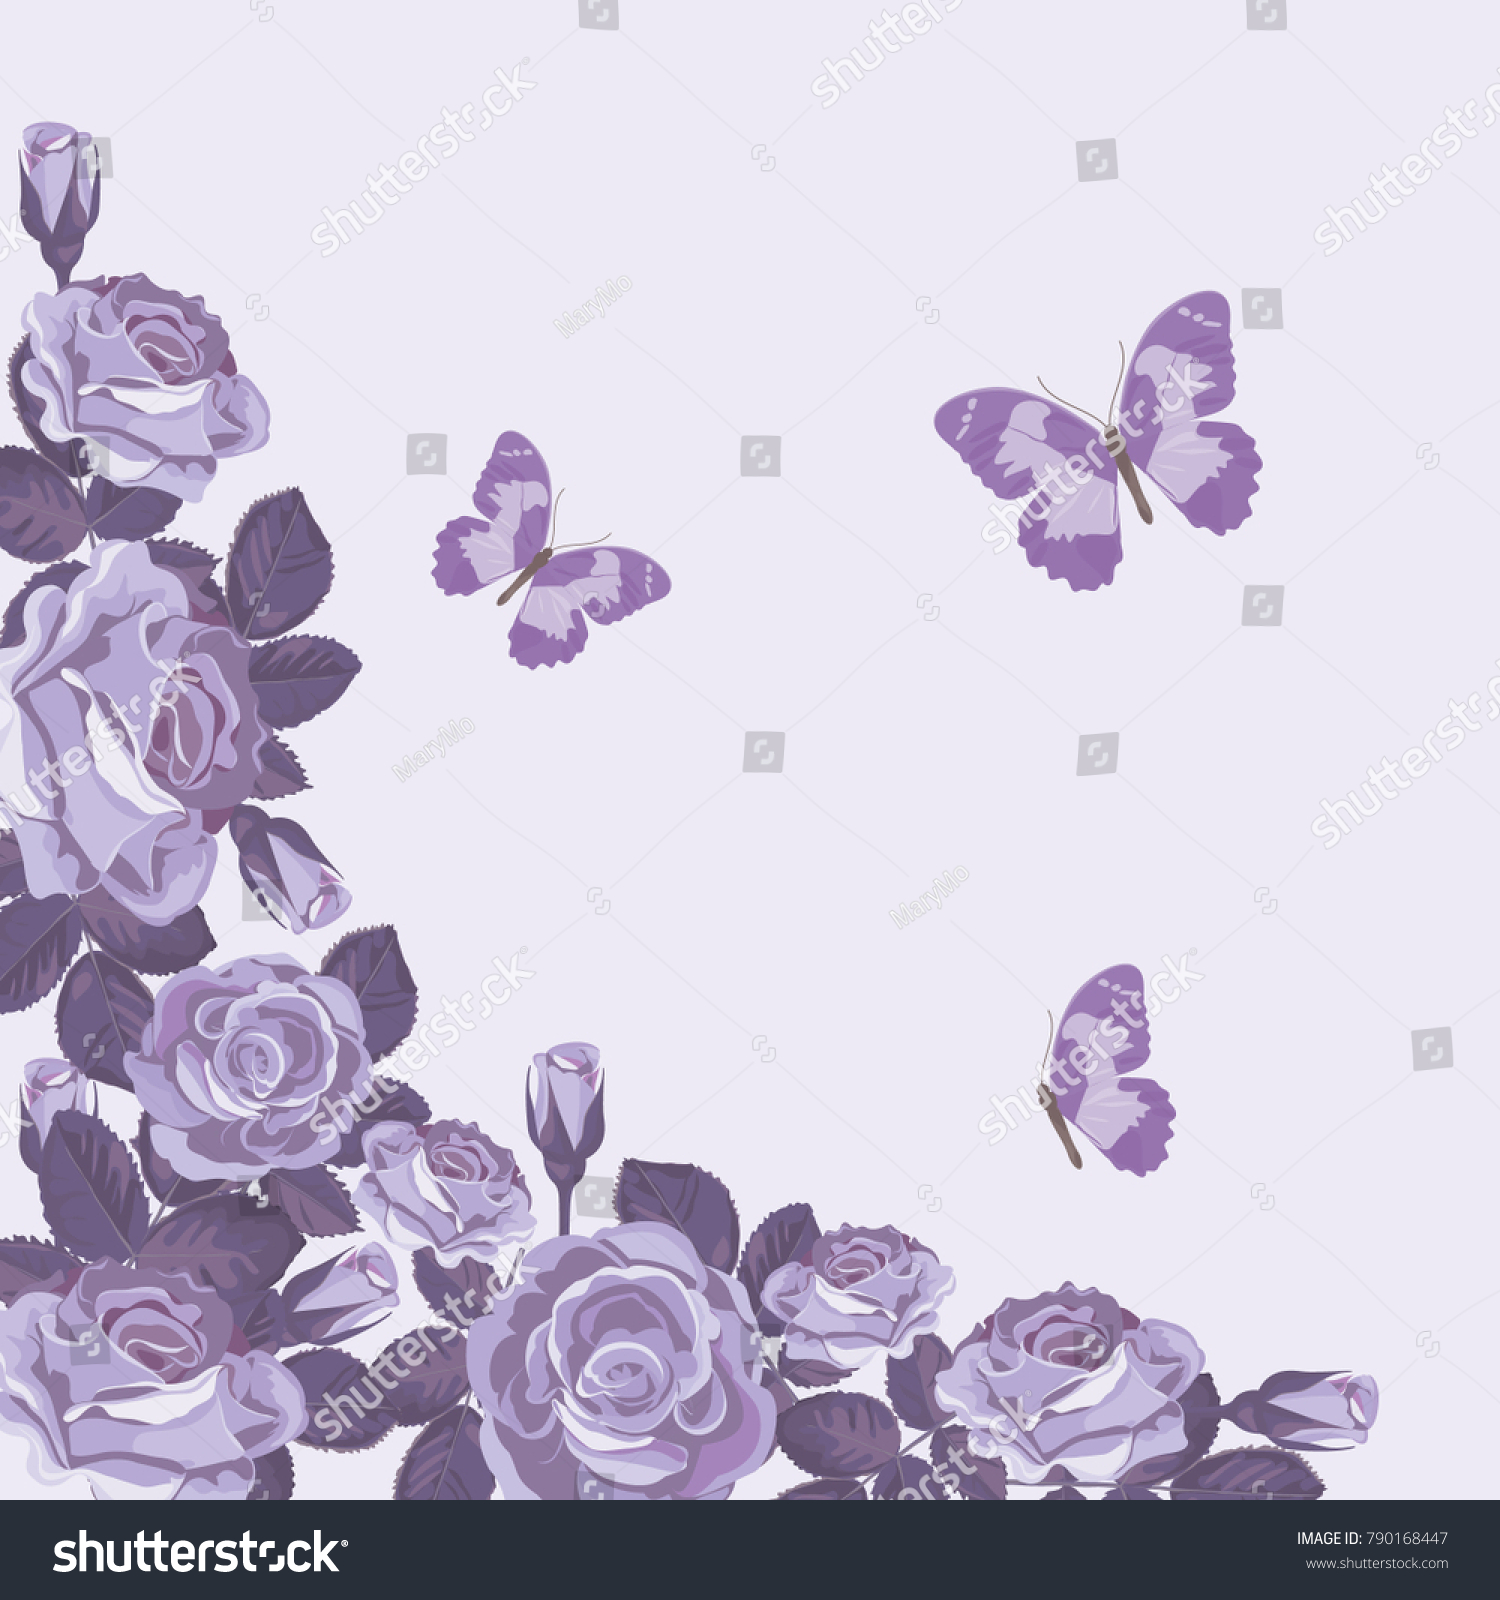 Floral Card Template Violet Roses Butterflies Stock Vector HD ...